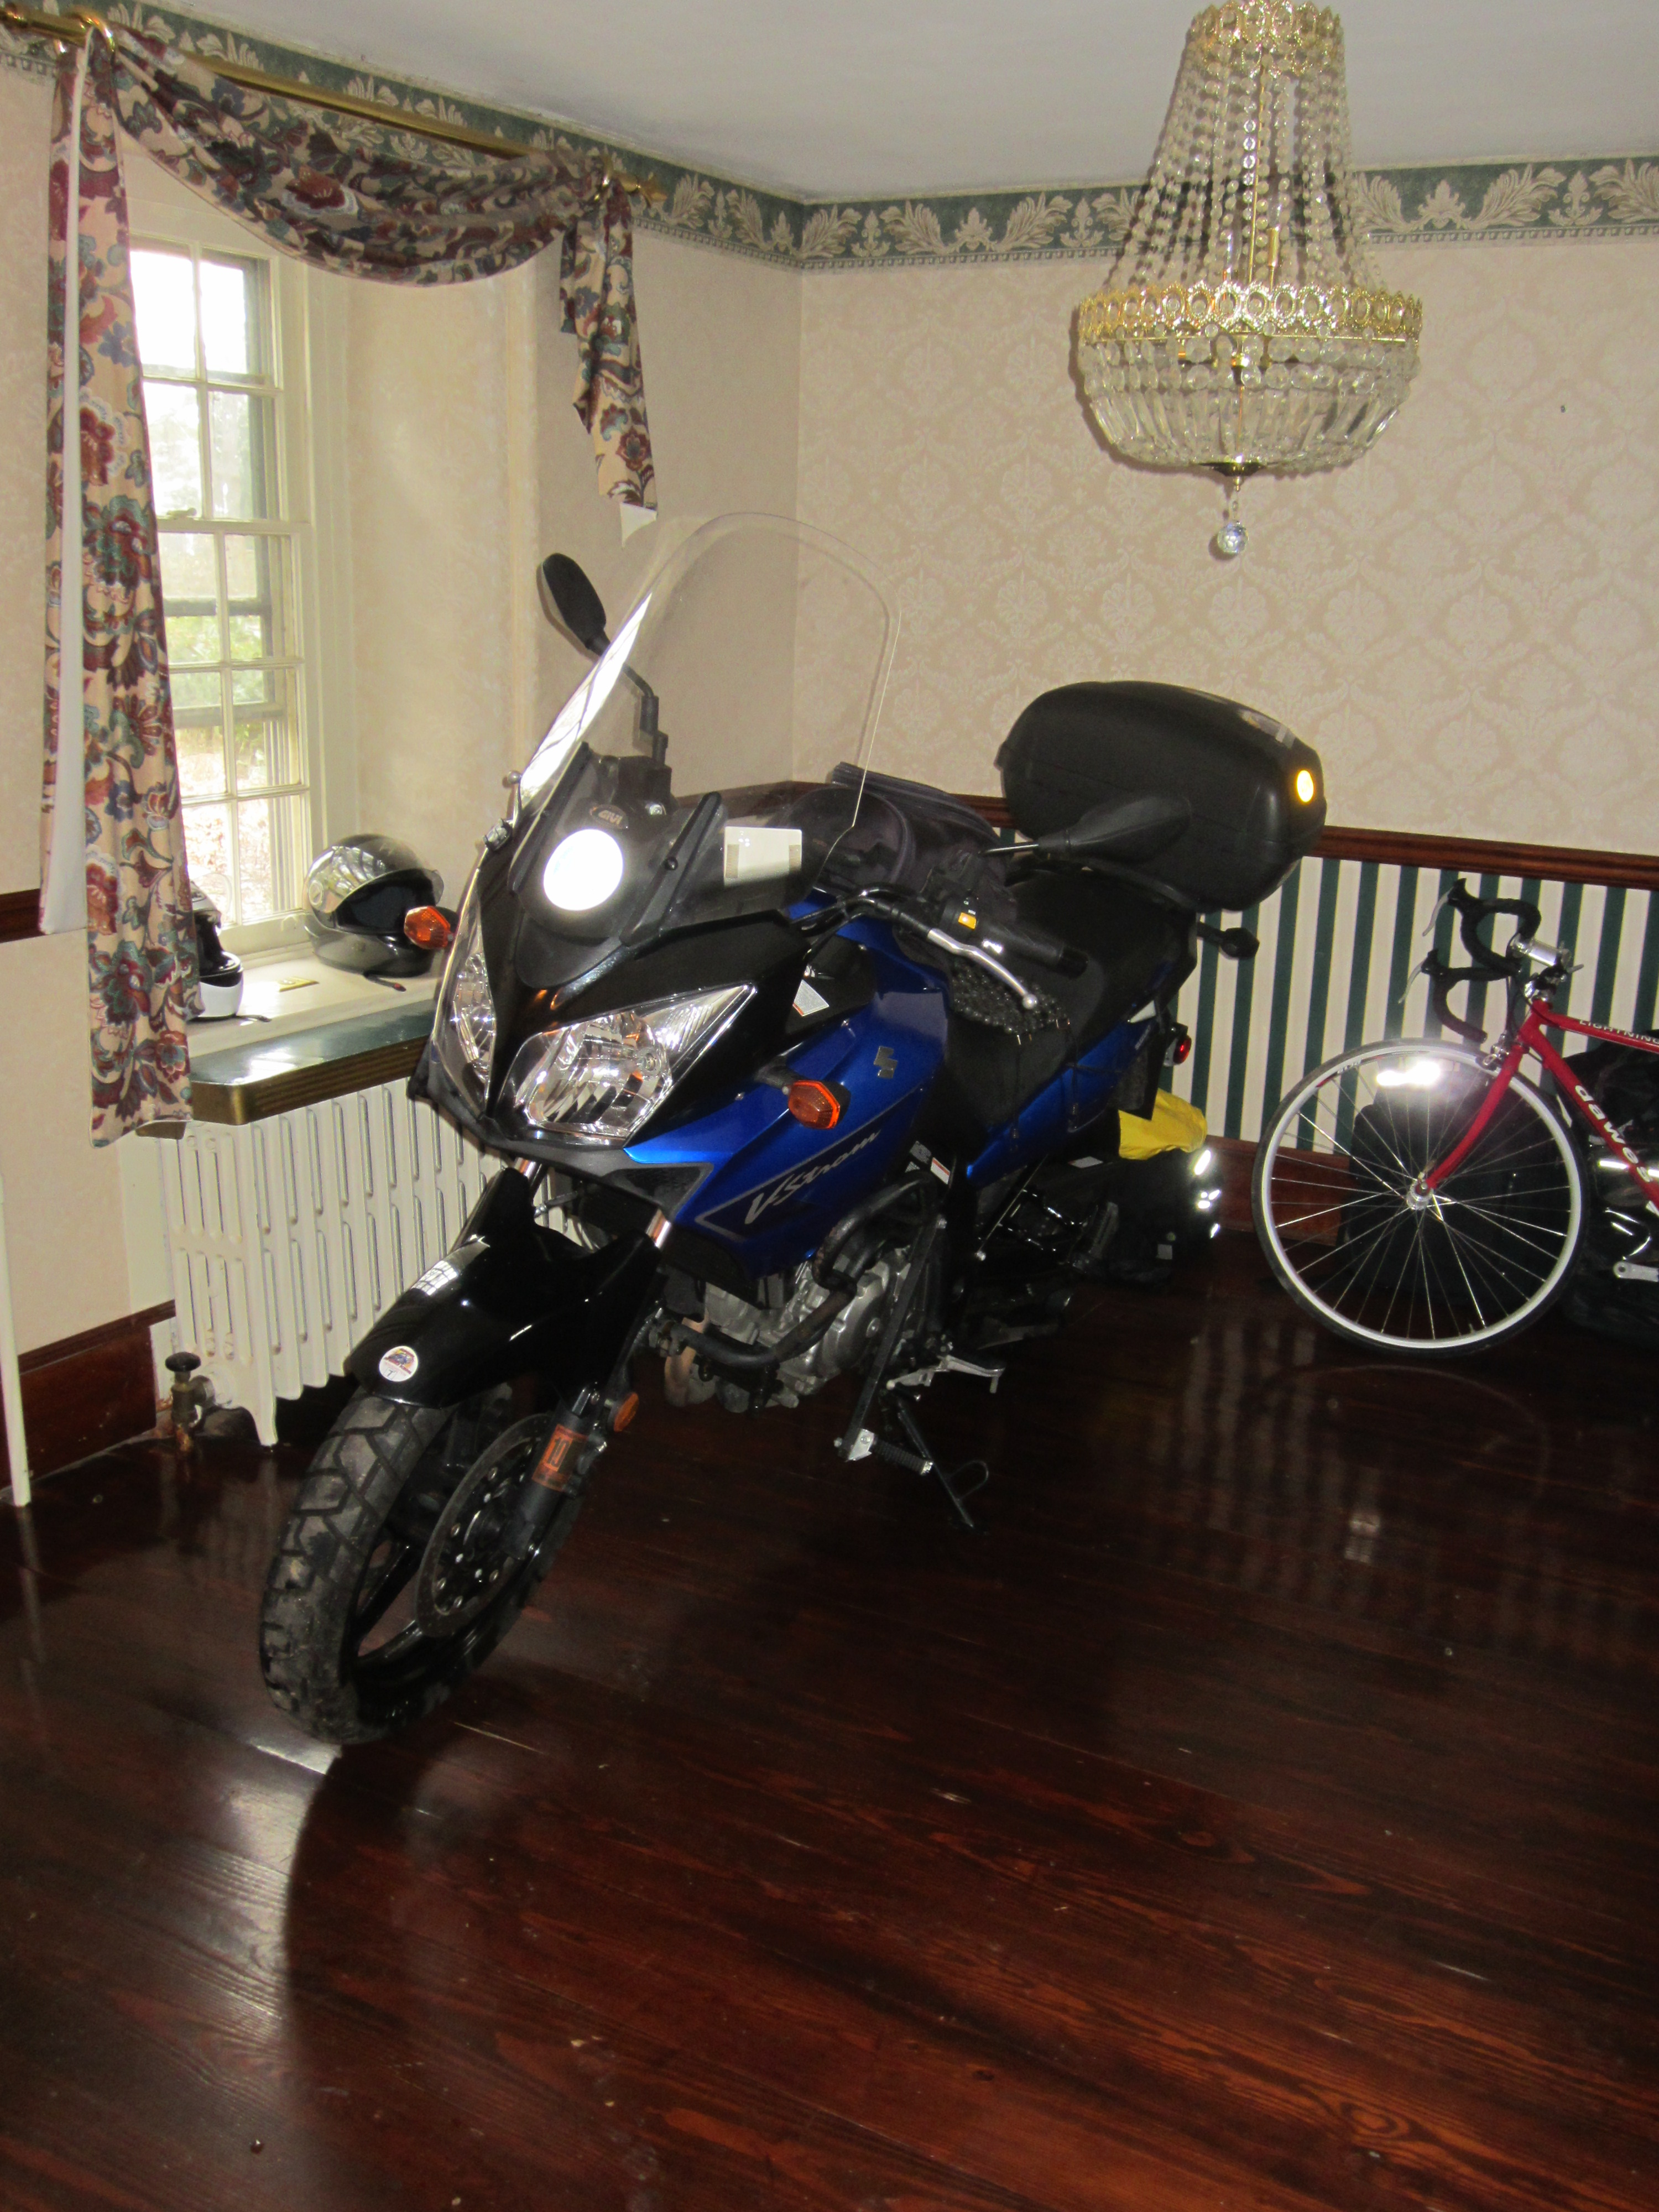 As A Bachelor, I Have A Very Convenient And Dry Place To Store My Motorcycle  For The Winter U2013 My Foyer!